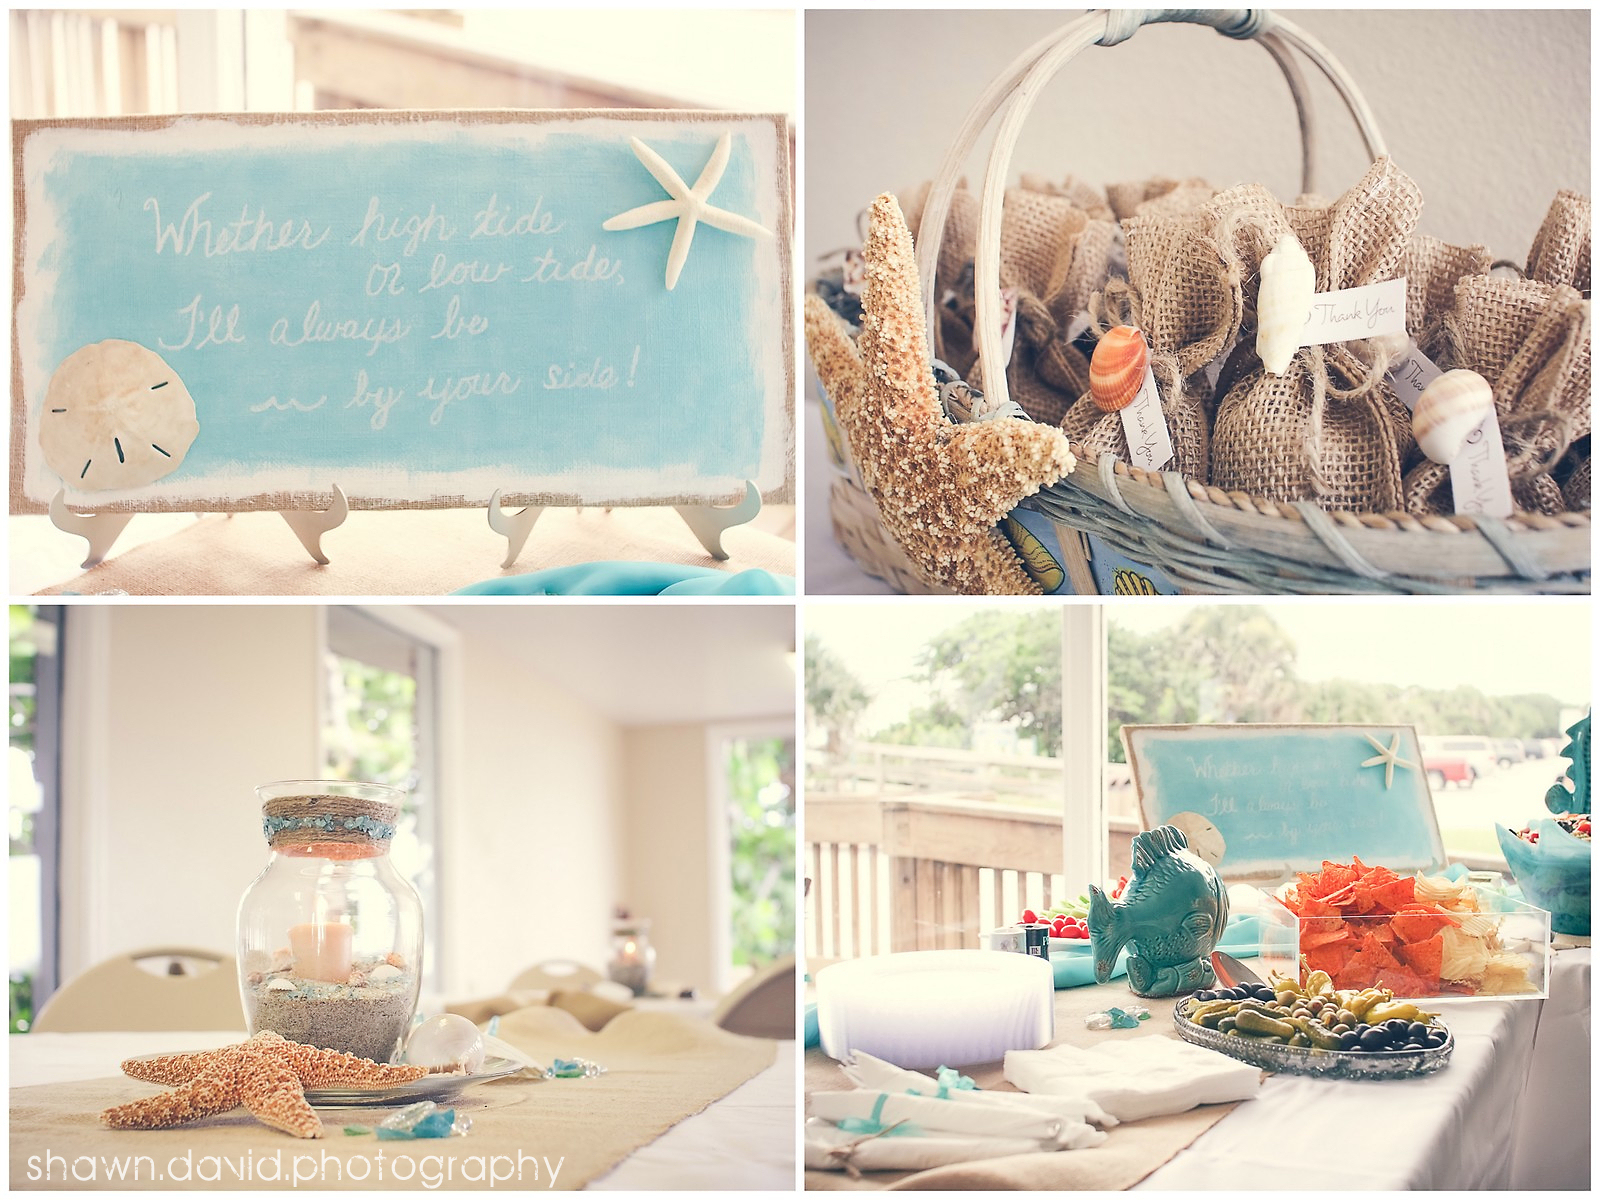 Here Are Some Great Pictures From An Awesome Wedding Celebration Last Week I Love The Whole Beachy Theme They Did Super Cute Thanks Guys